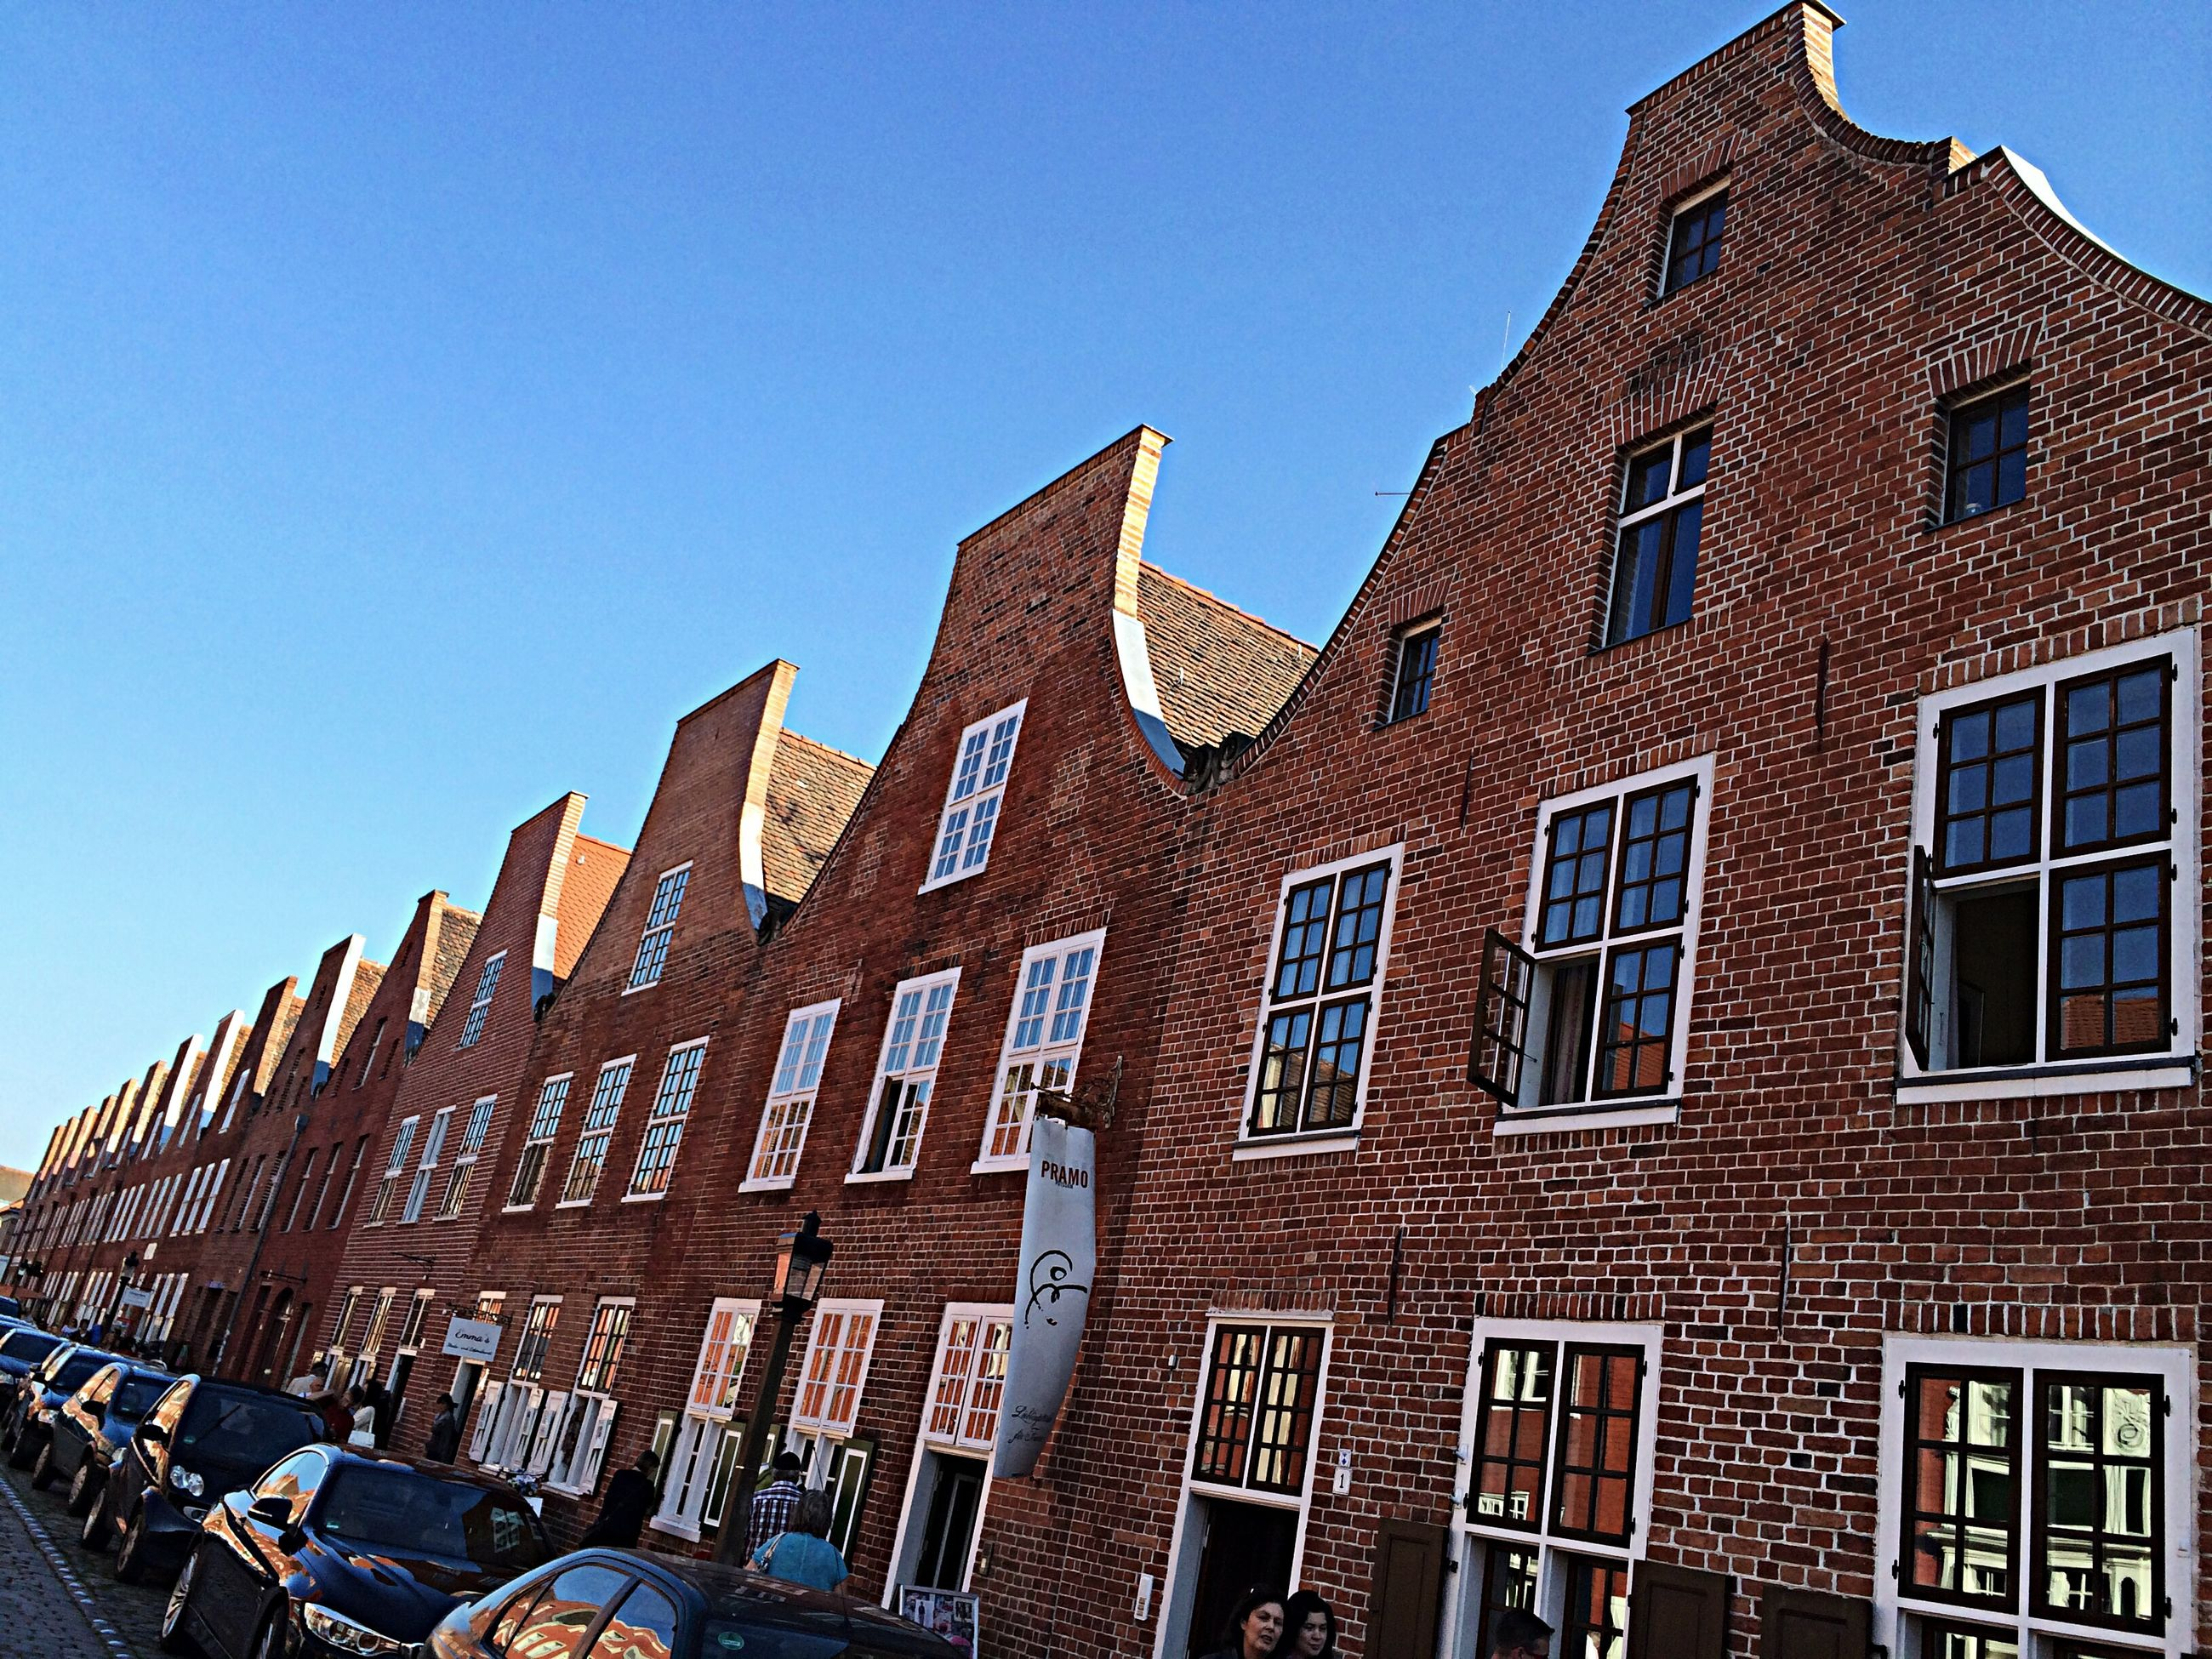 building exterior, architecture, built structure, clear sky, low angle view, window, building, city, blue, day, sunlight, residential building, outdoors, residential structure, tower, no people, facade, sky, copy space, history